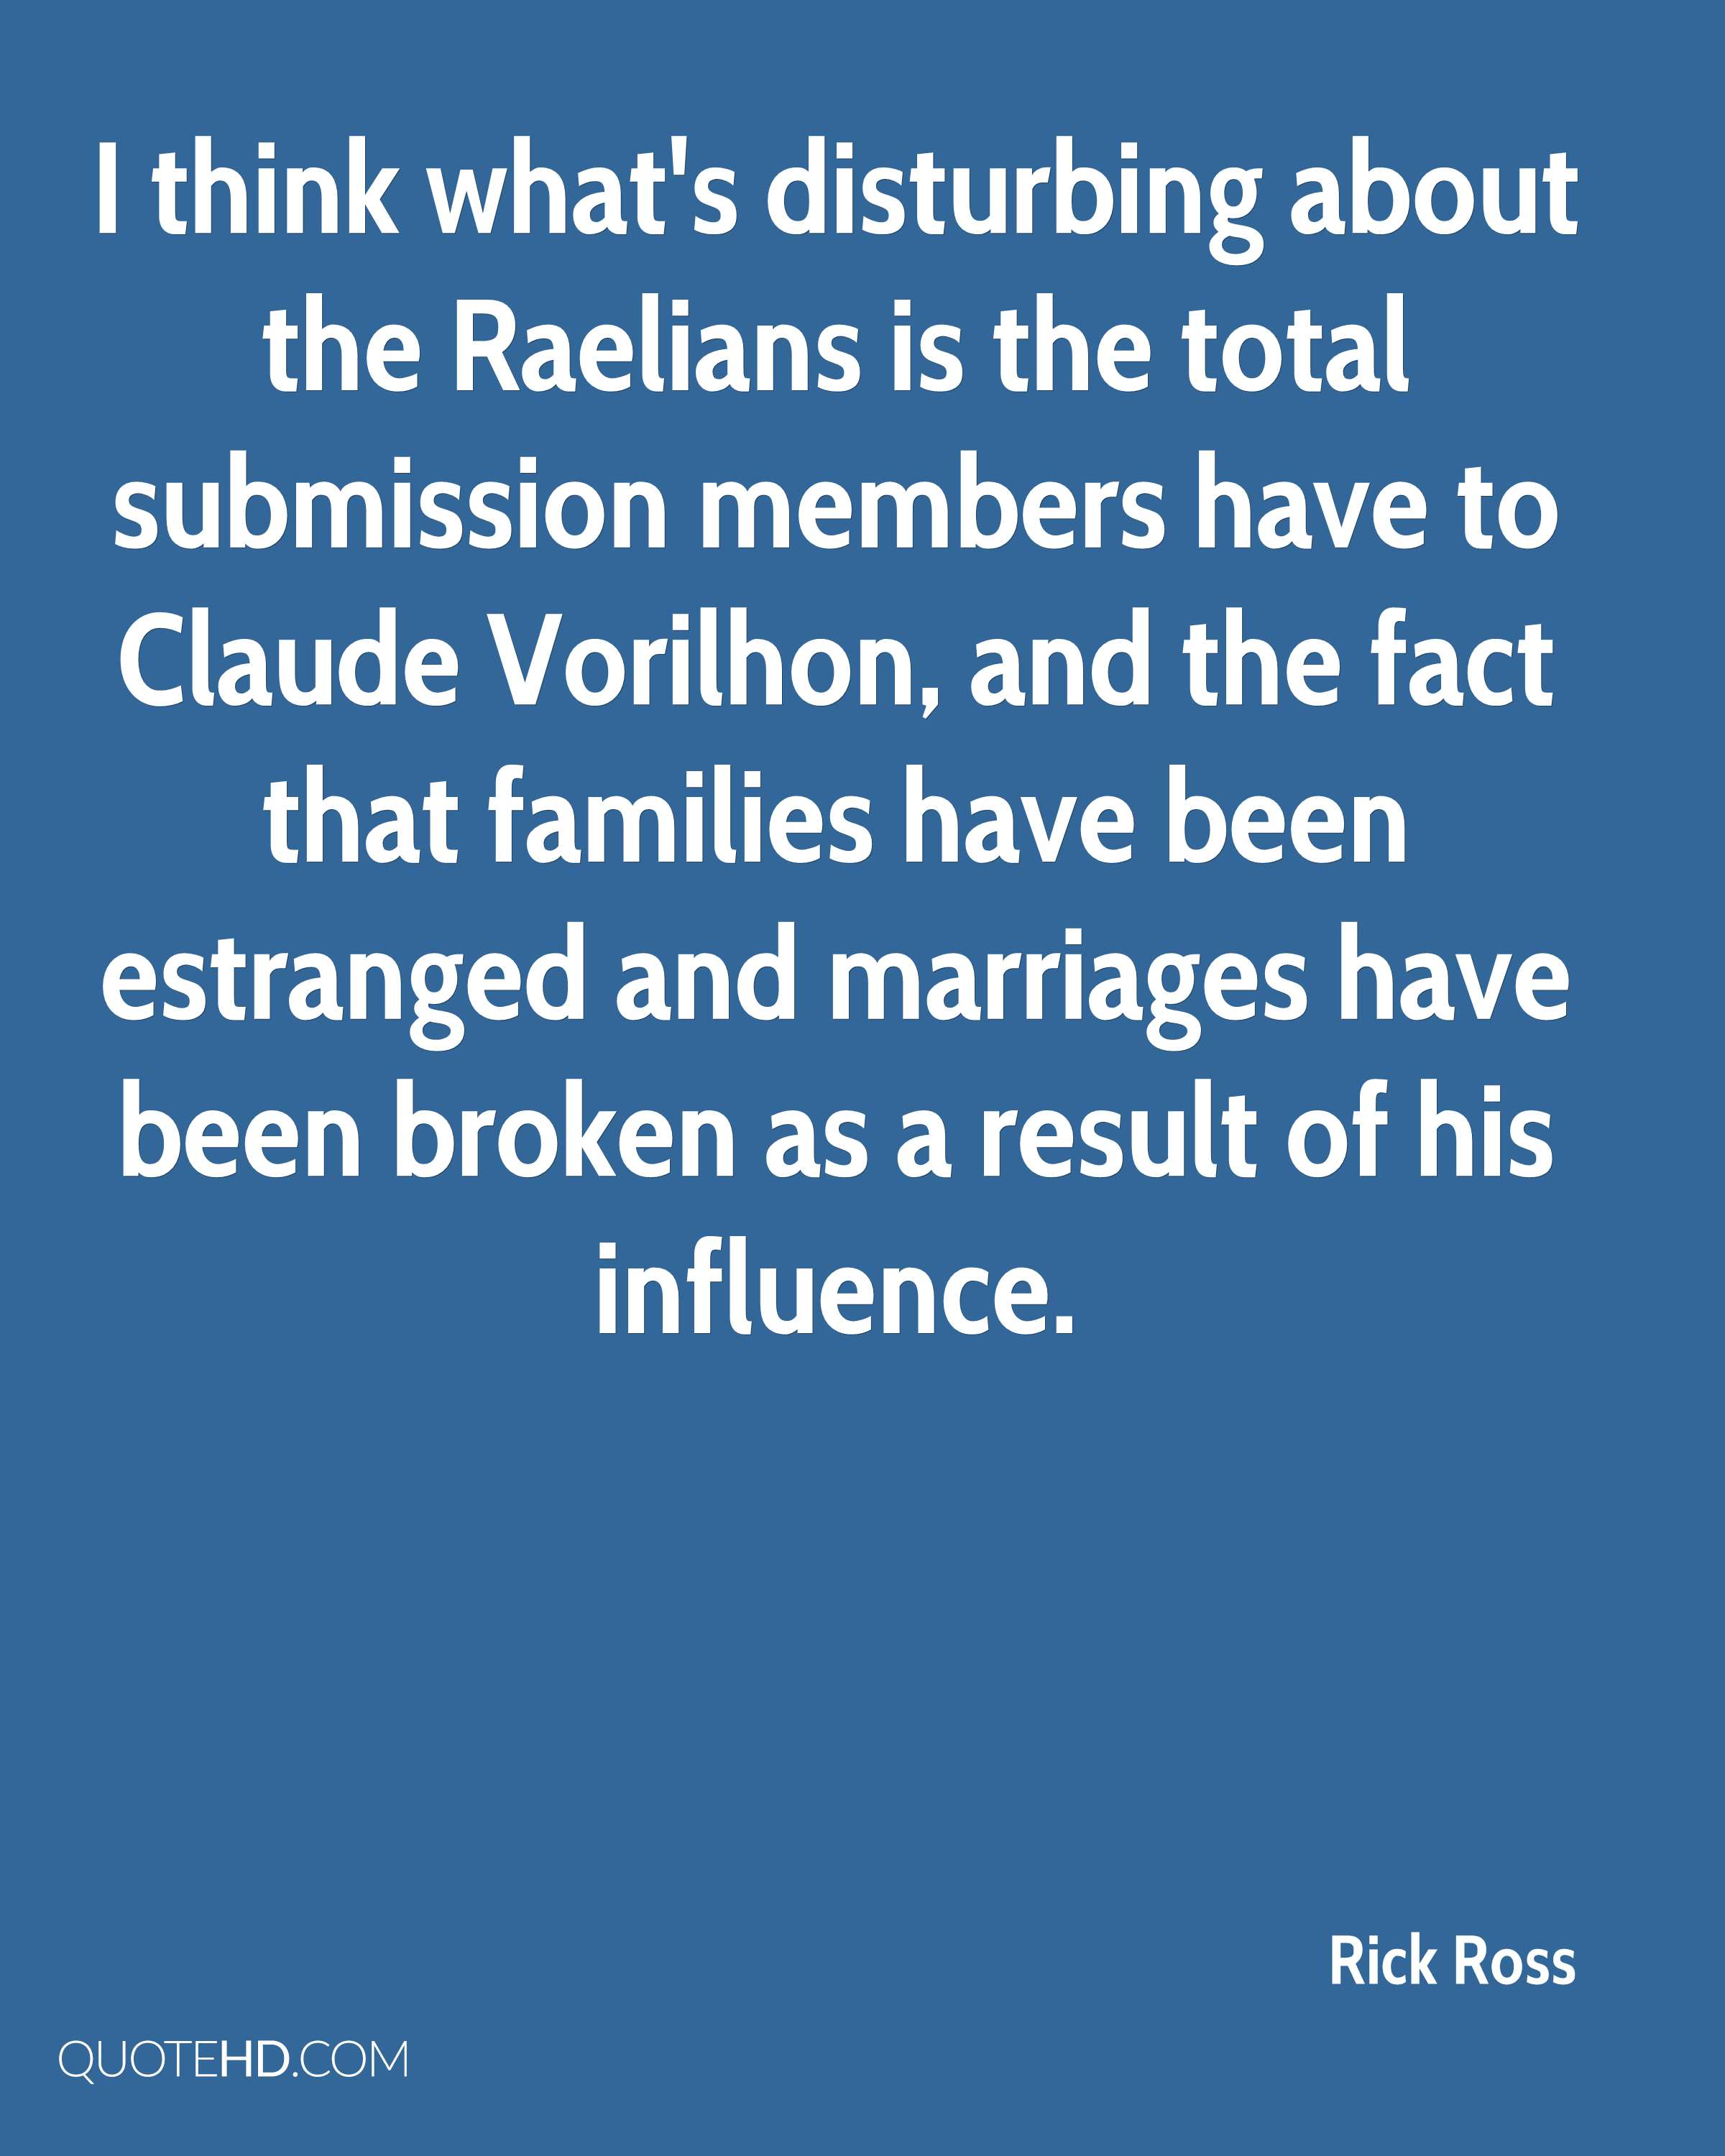 I think what's disturbing about the Raelians is the total submission members have to Claude Vorilhon, and the fact that families have been estranged and marriages have been broken as a result of his influence.